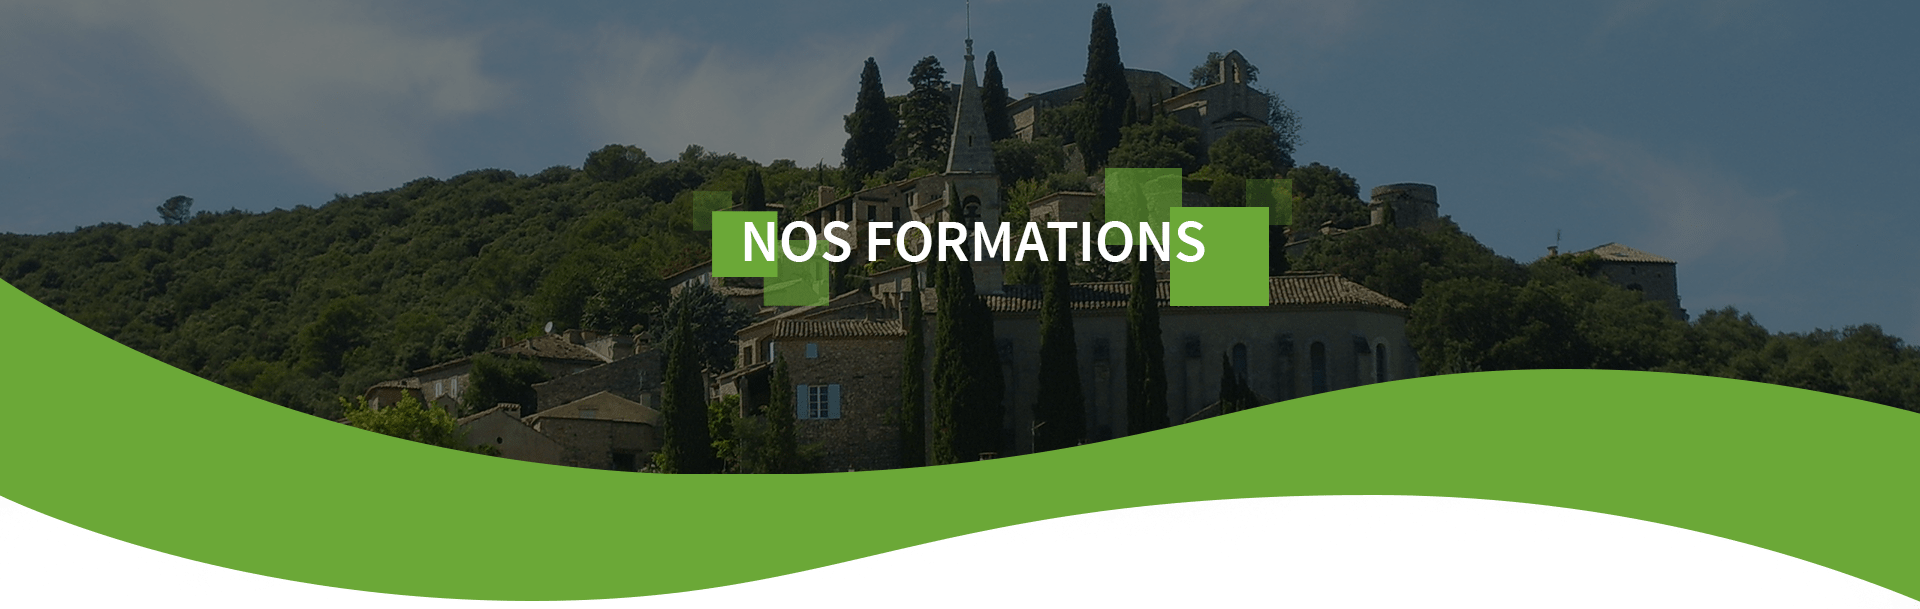 Occitagri - Formation Agricole Occitanie - nos formations bg-top_1-min